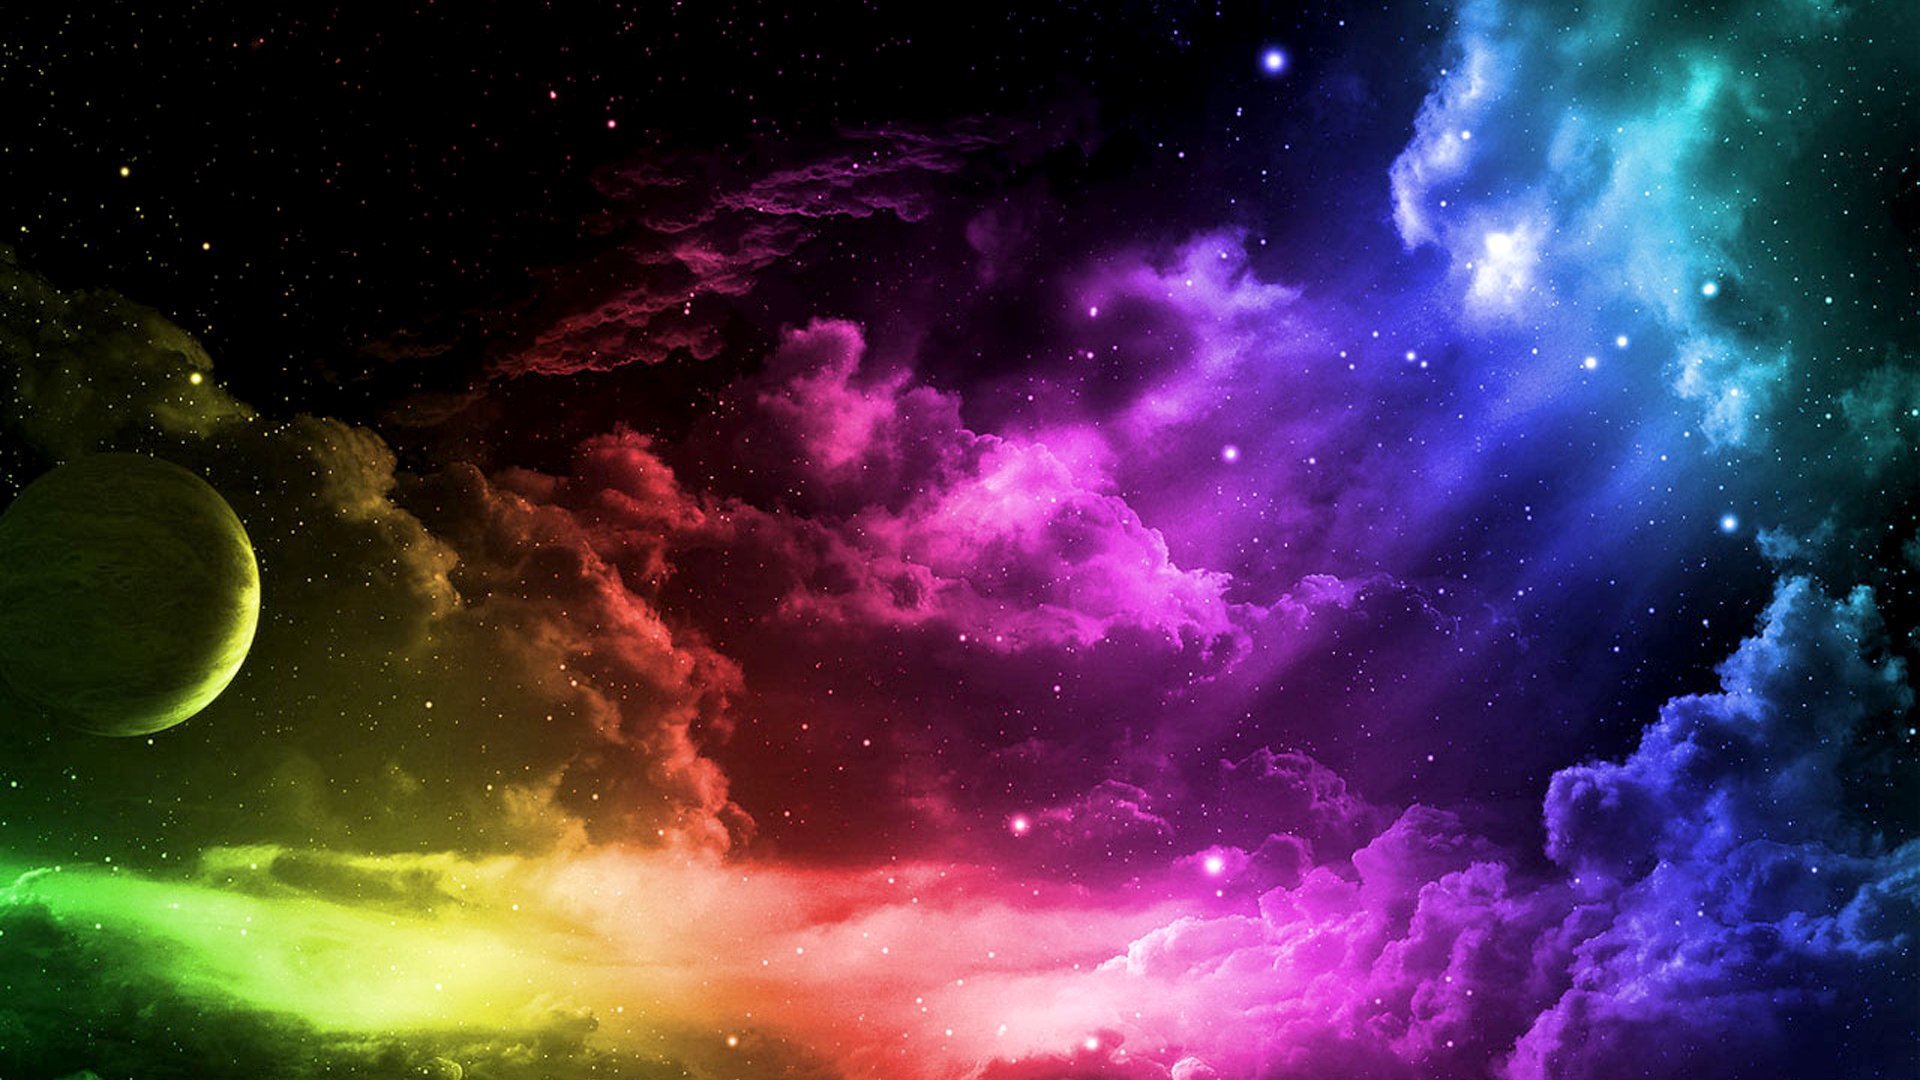 Free Colorful Desktop Backgrounds